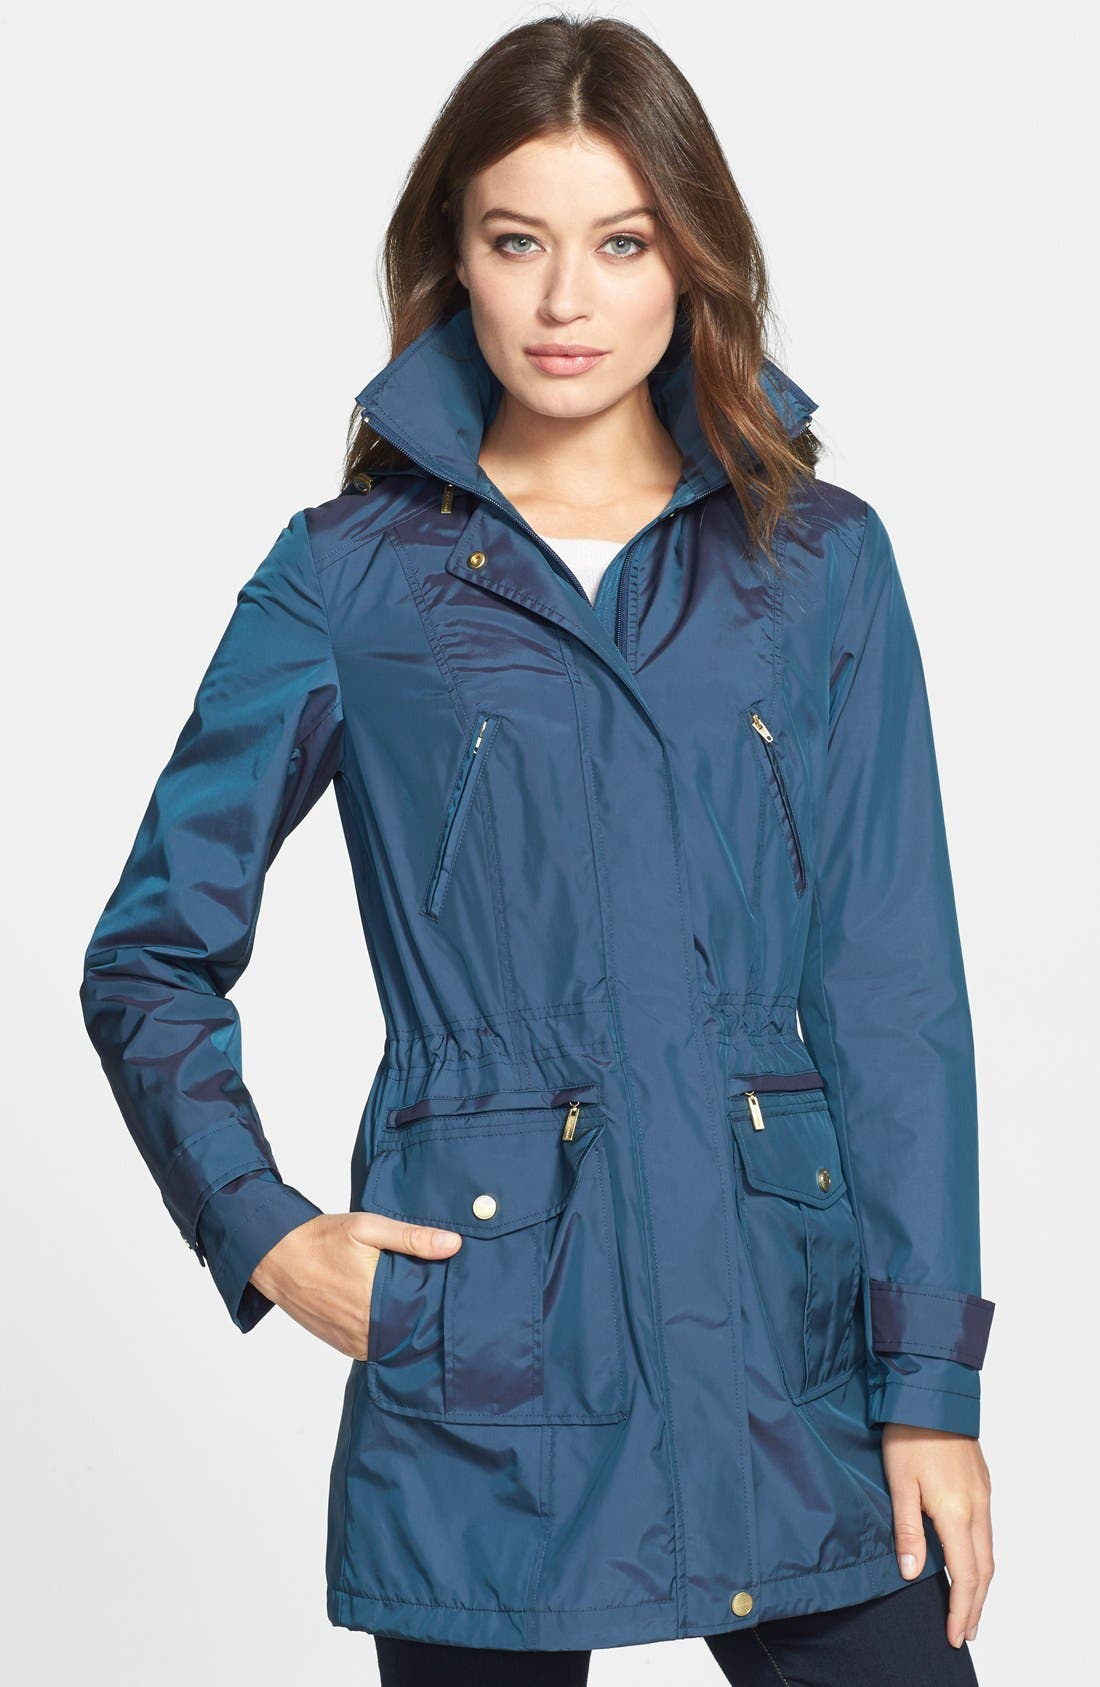 Alternate Image 1 Selected - Cole Haan Packable Raincoat with Detachable Hood